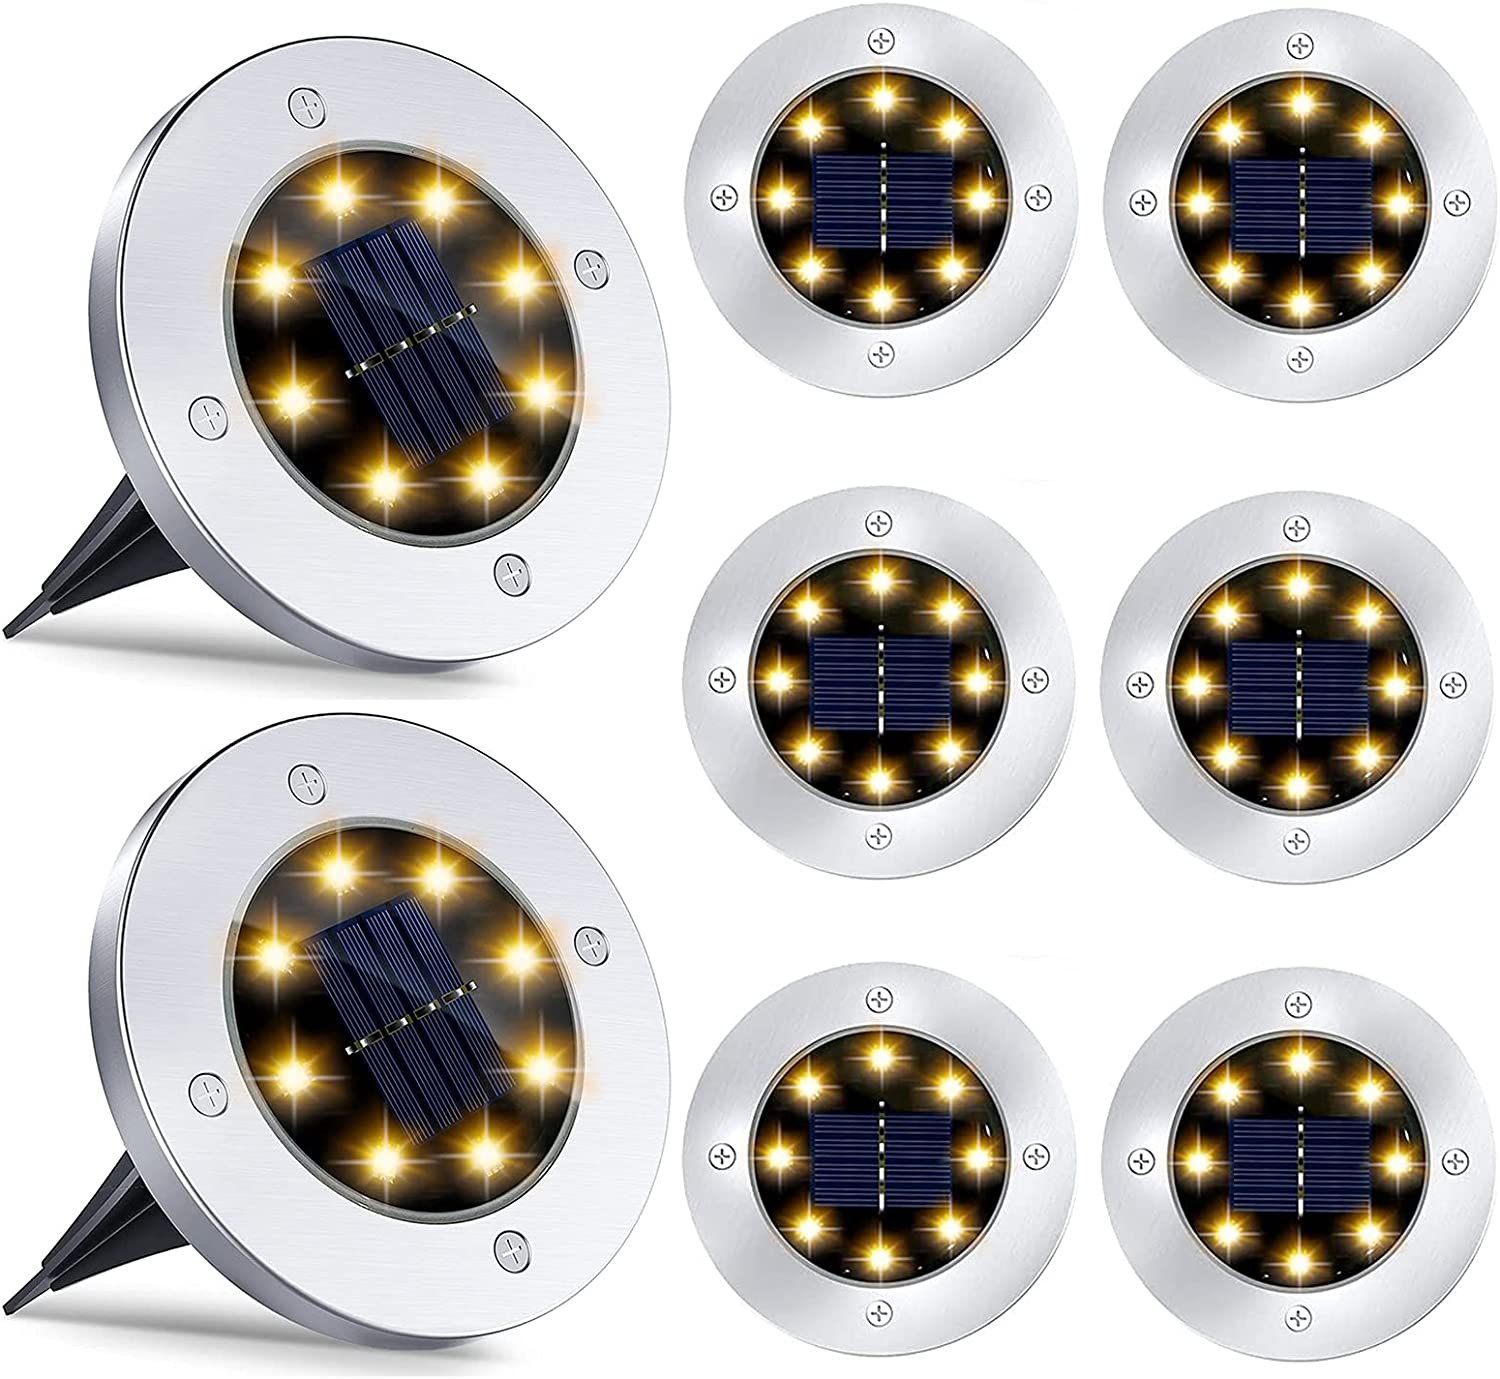 ATXOI Complete Free Shipping 8 LED Solar Lights Ground Outdoor- Garden SALENEW very popular!